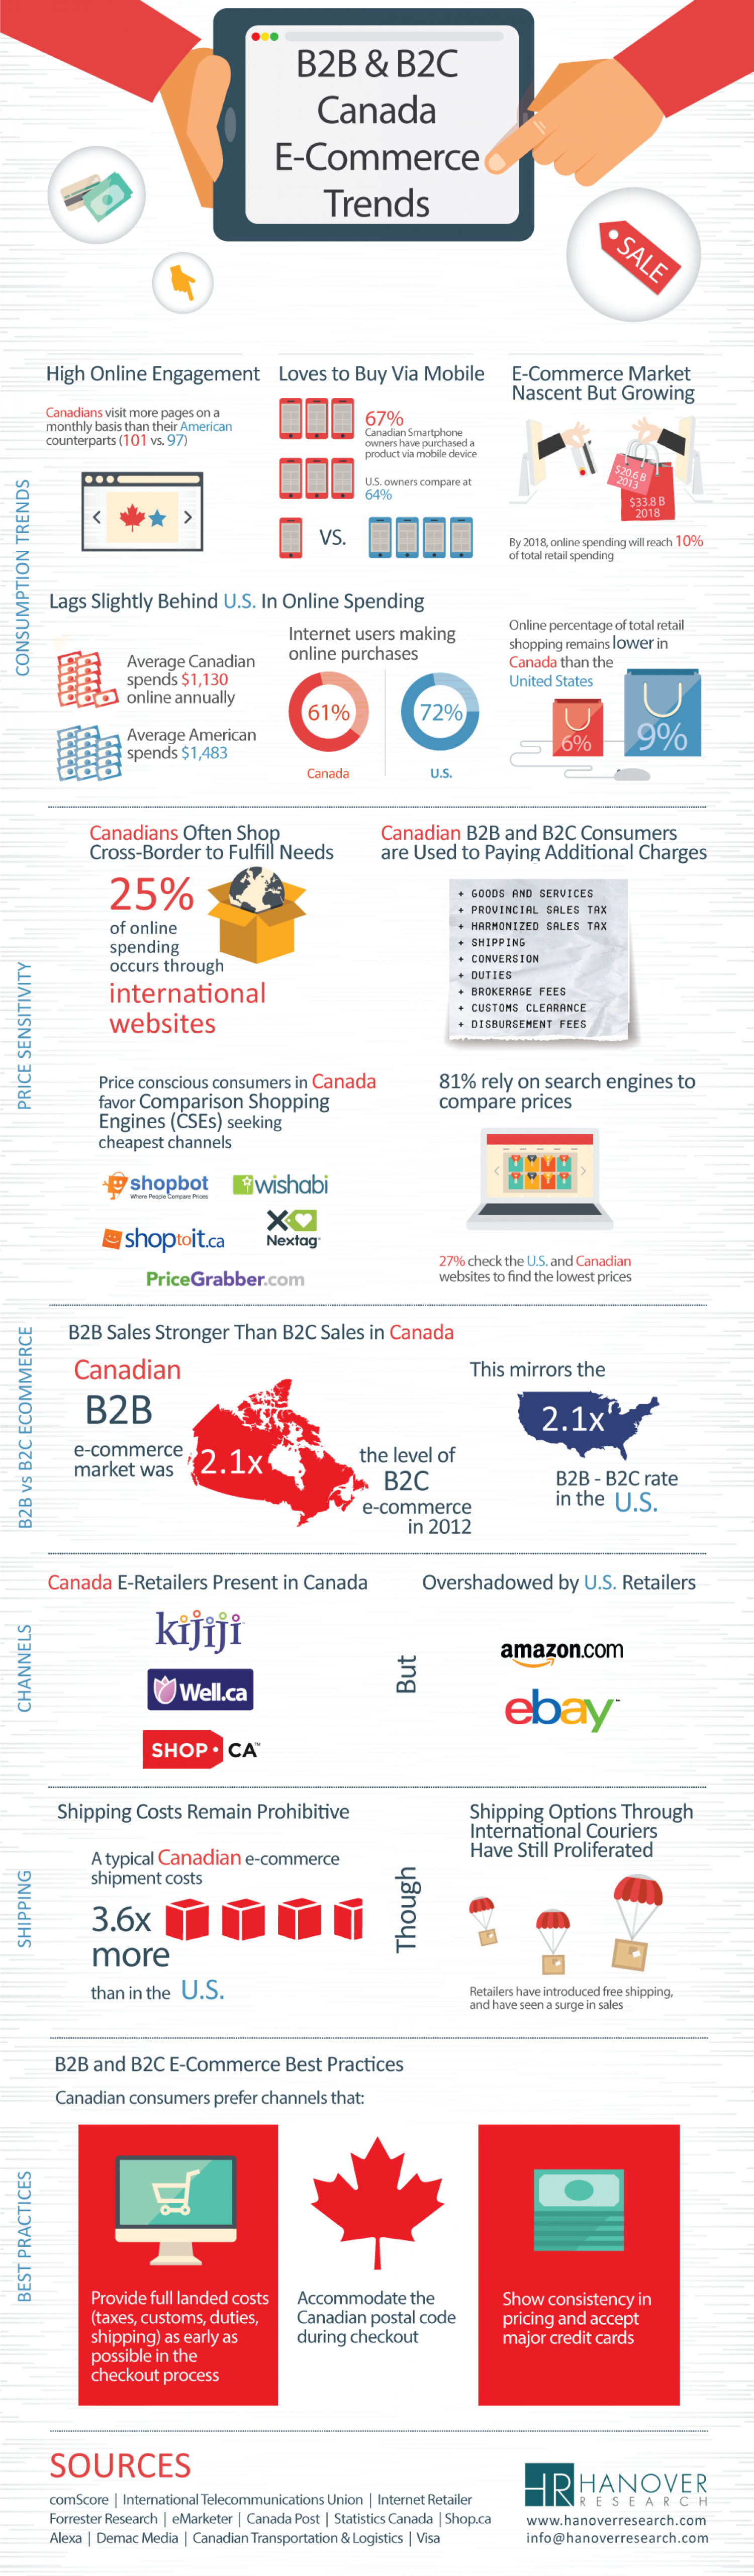 B2B & B2C Canada E-Commerce Trends Infographic